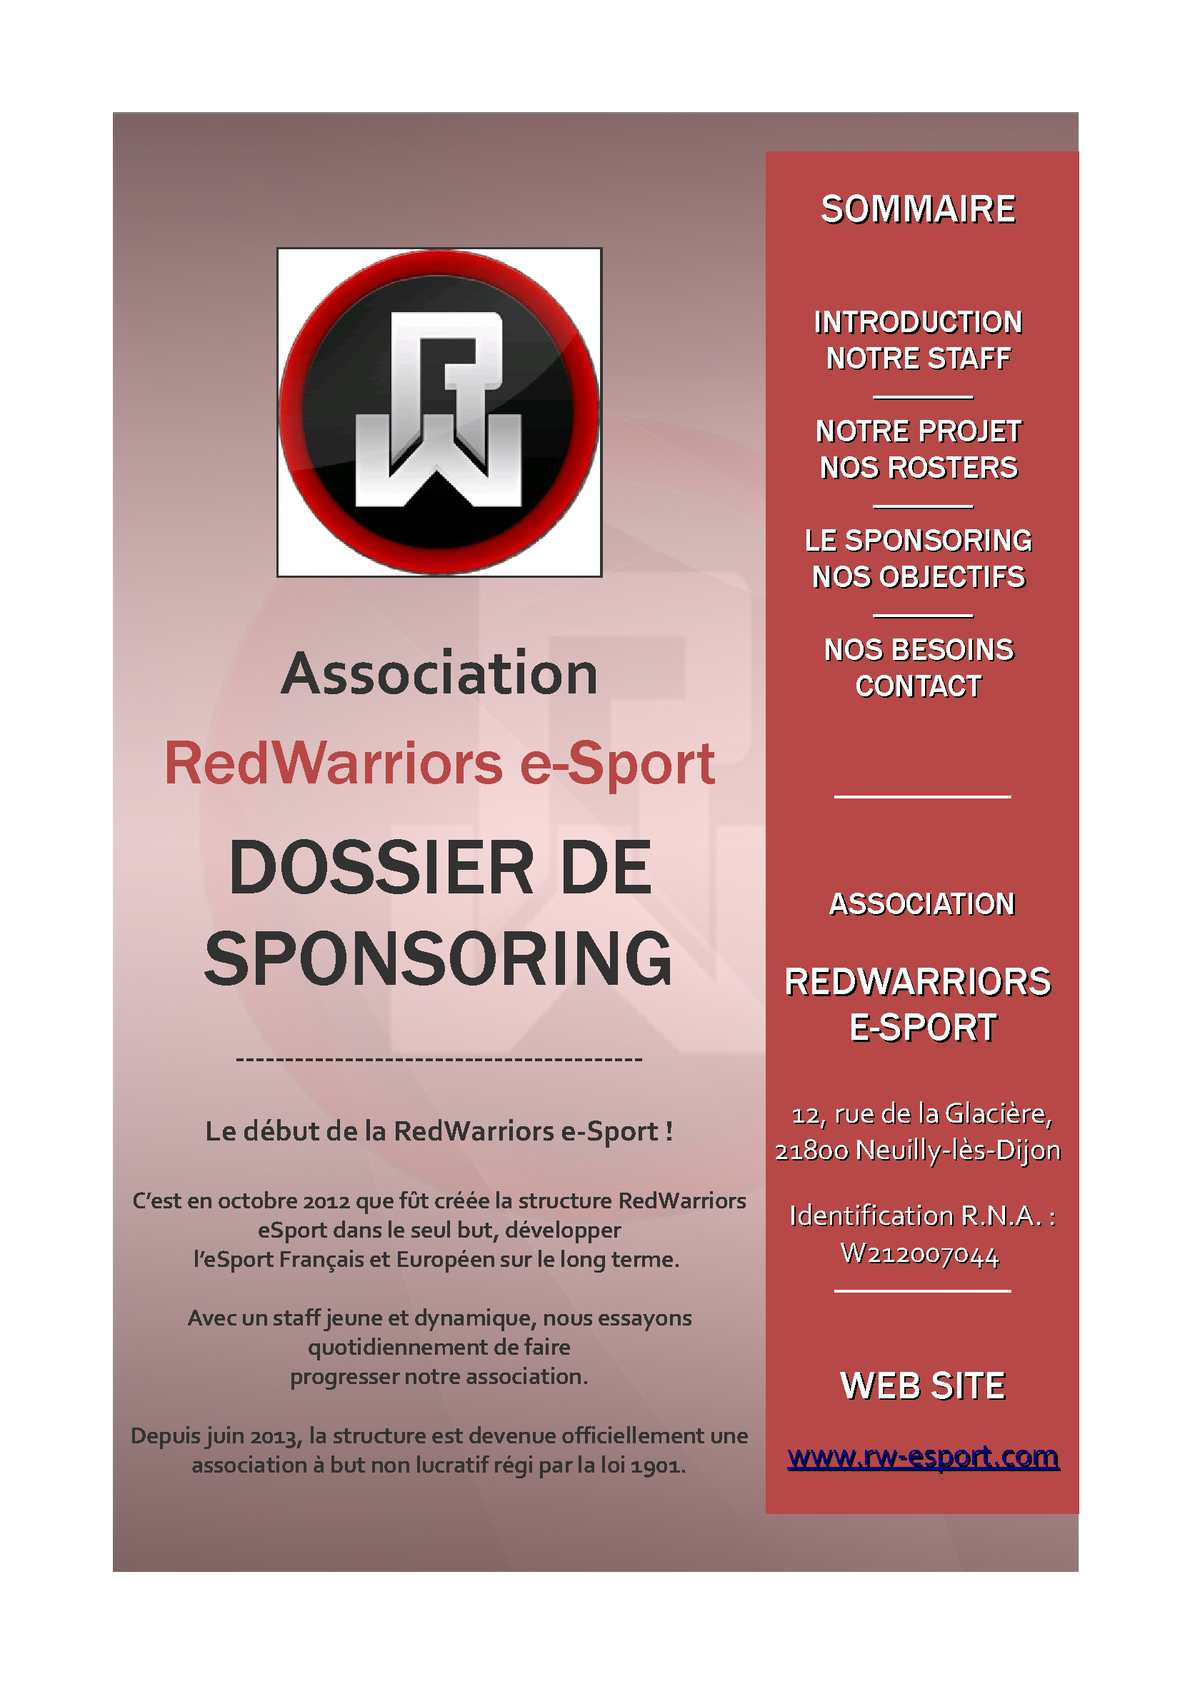 Dossier De Sponsoring Exemple Pdf Download Articles Depot